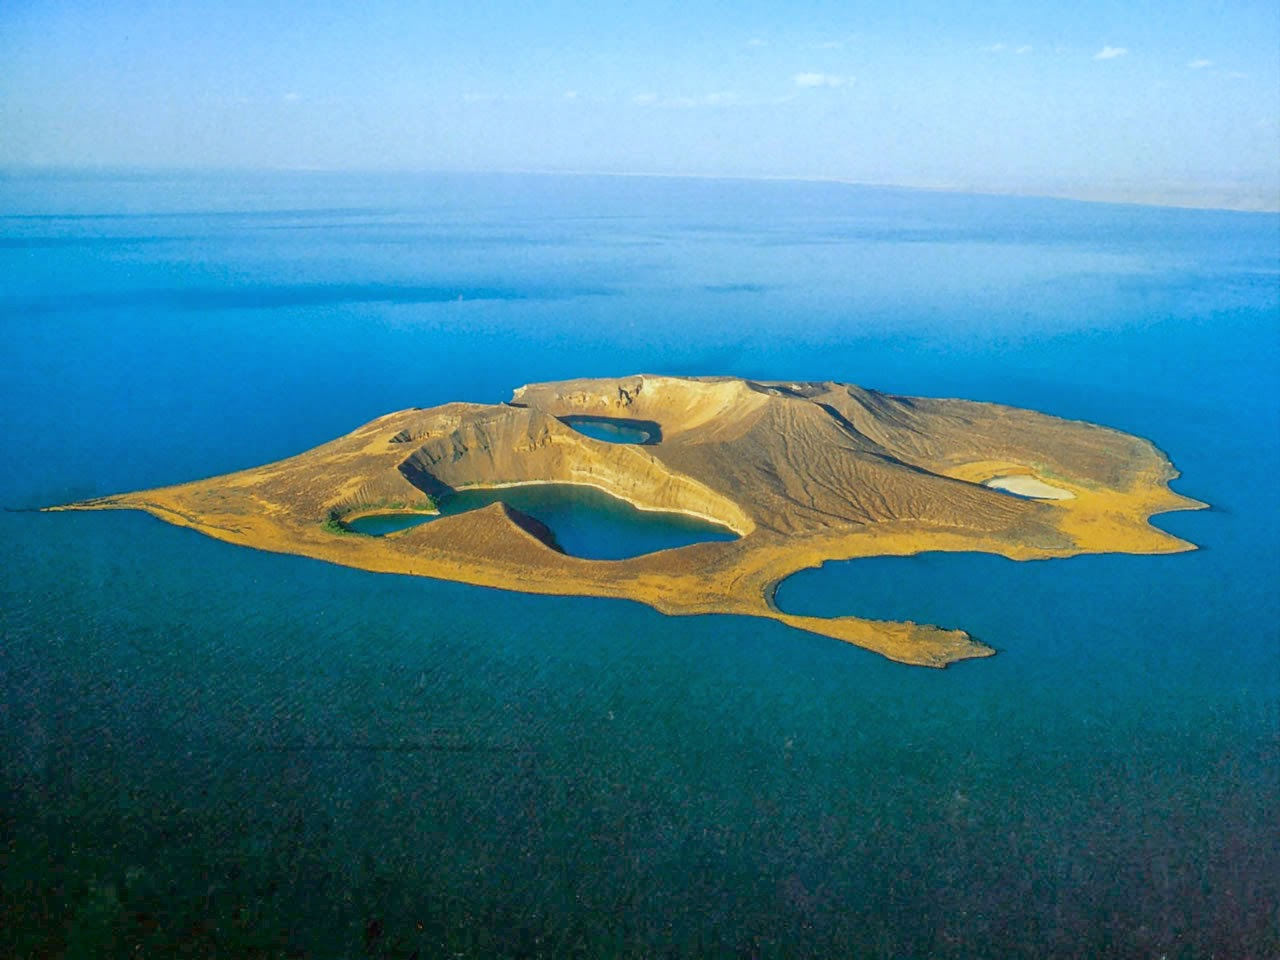 Unidentified island in Lake Turkana.